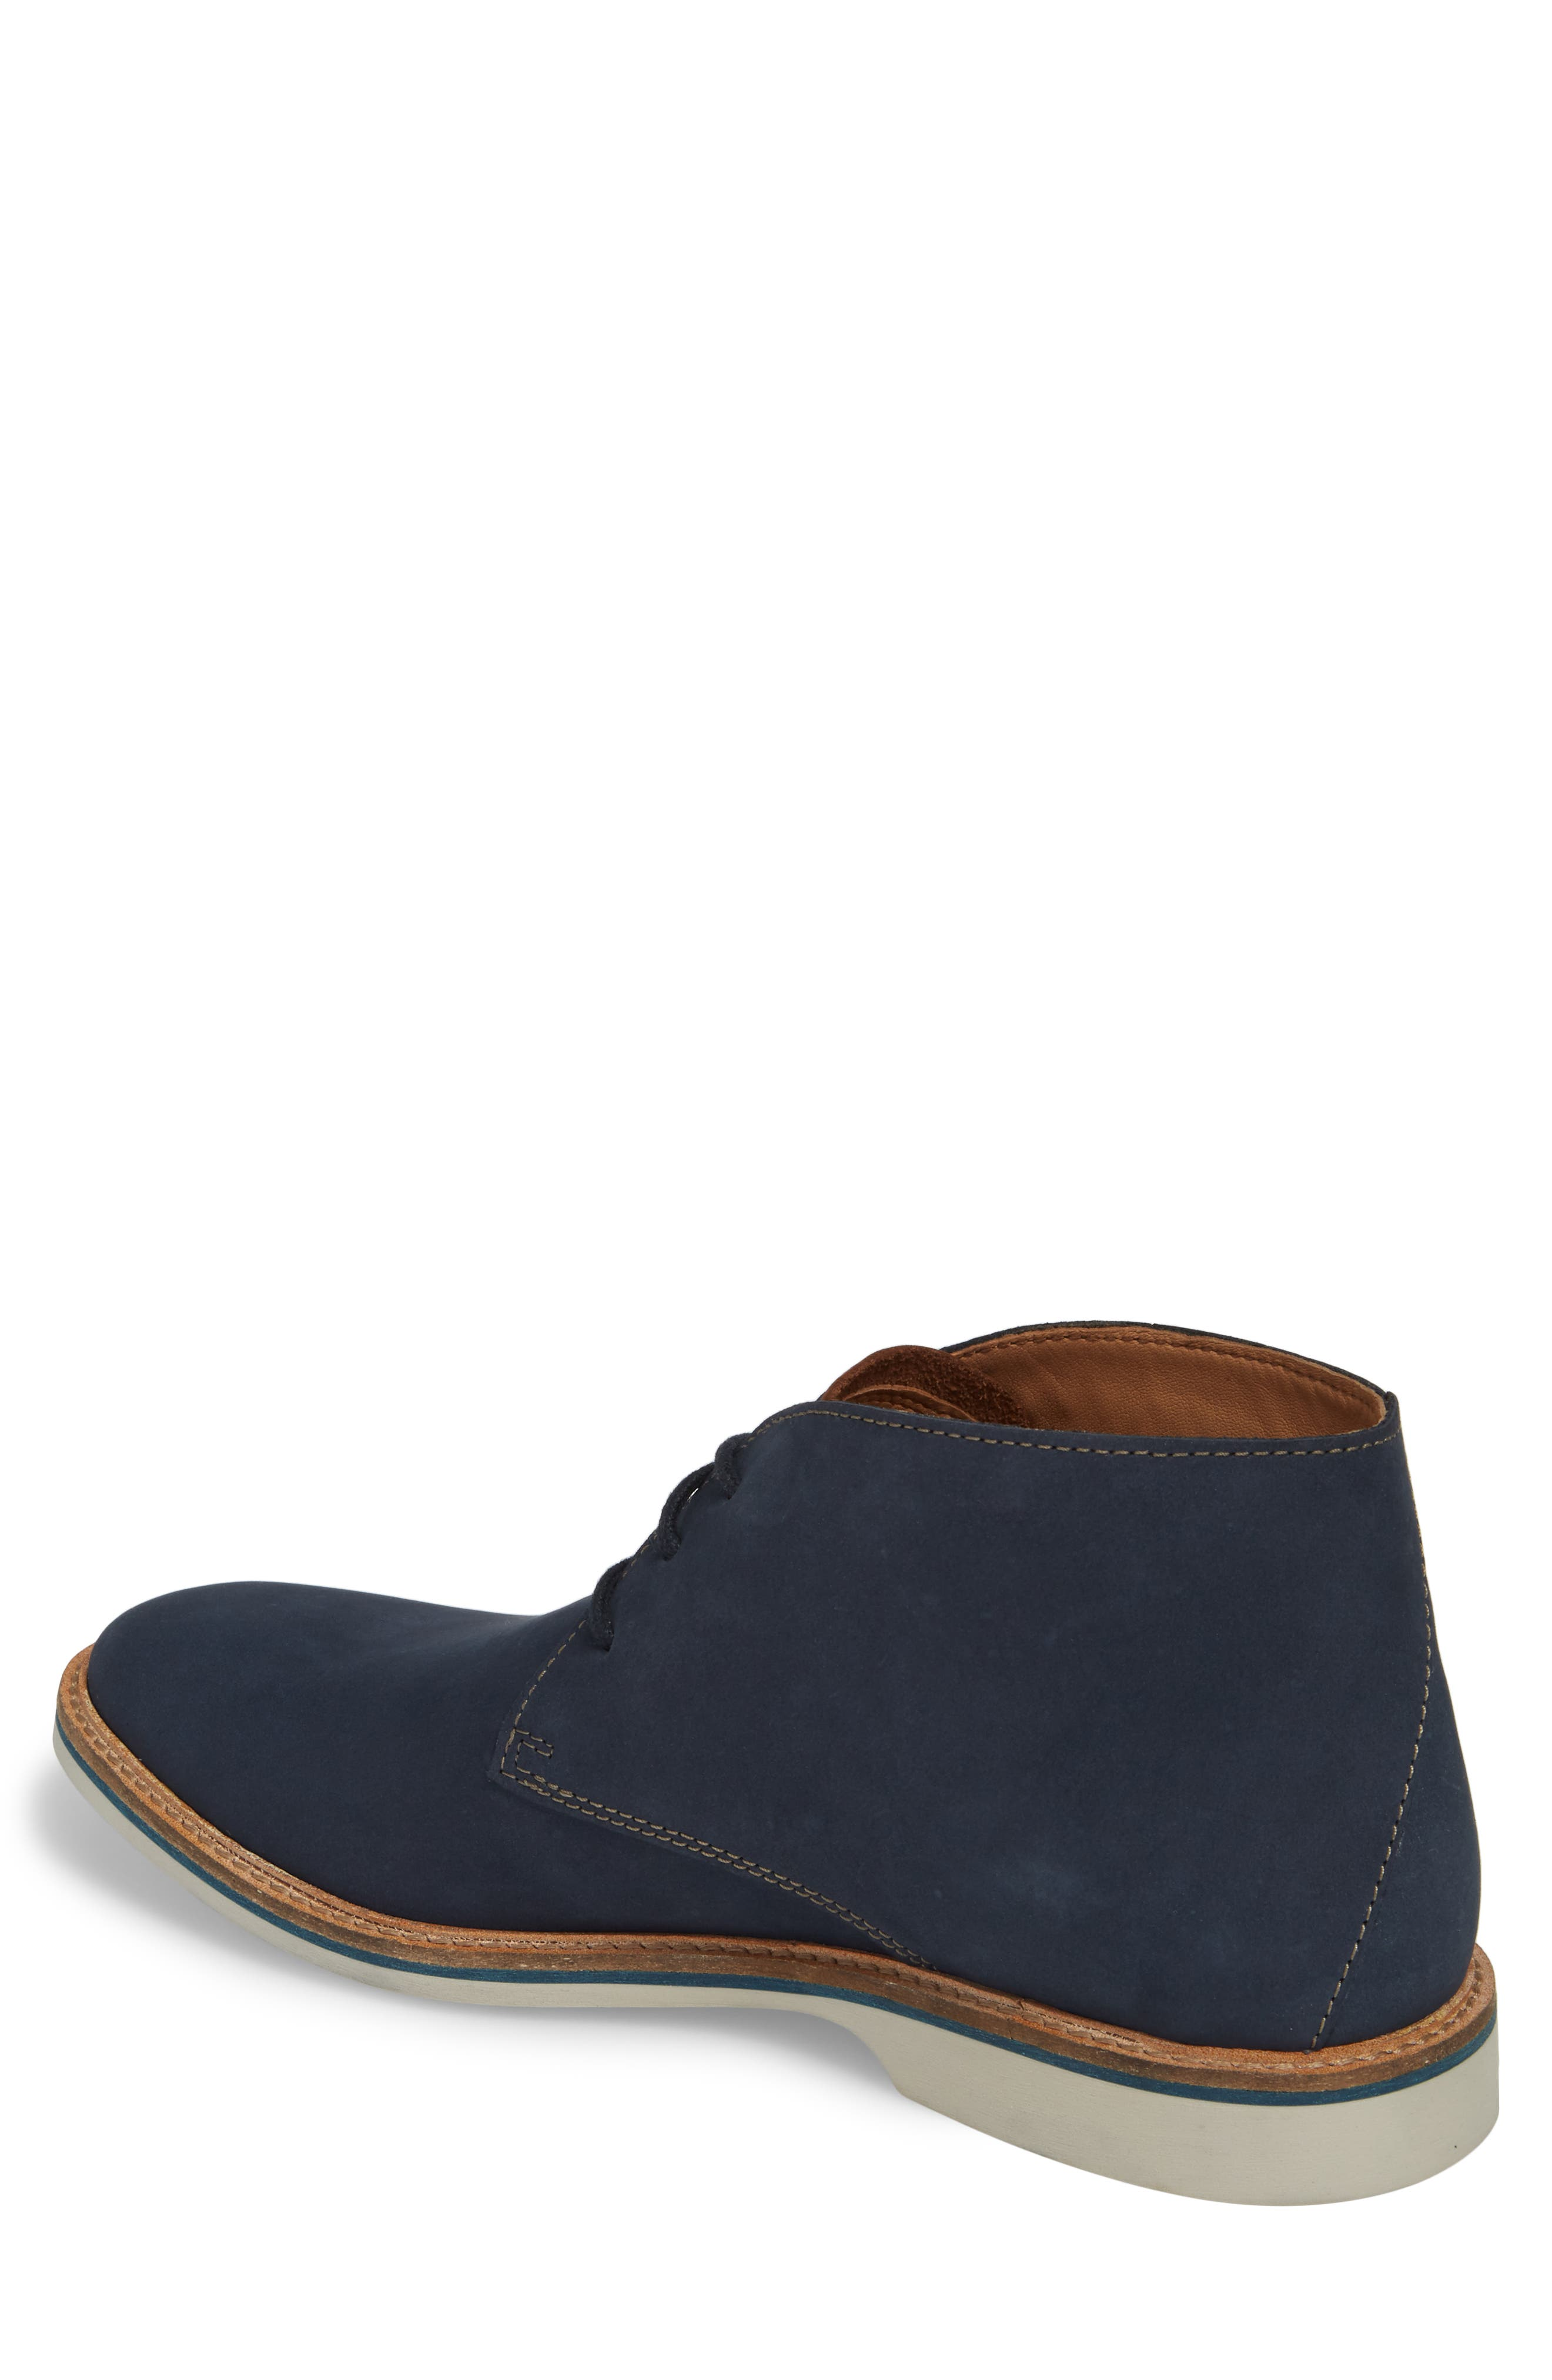 Clarks<sup>®</sup> Atticus Limit Chukka Boot,                             Alternate thumbnail 2, color,                             Navy Nubuck